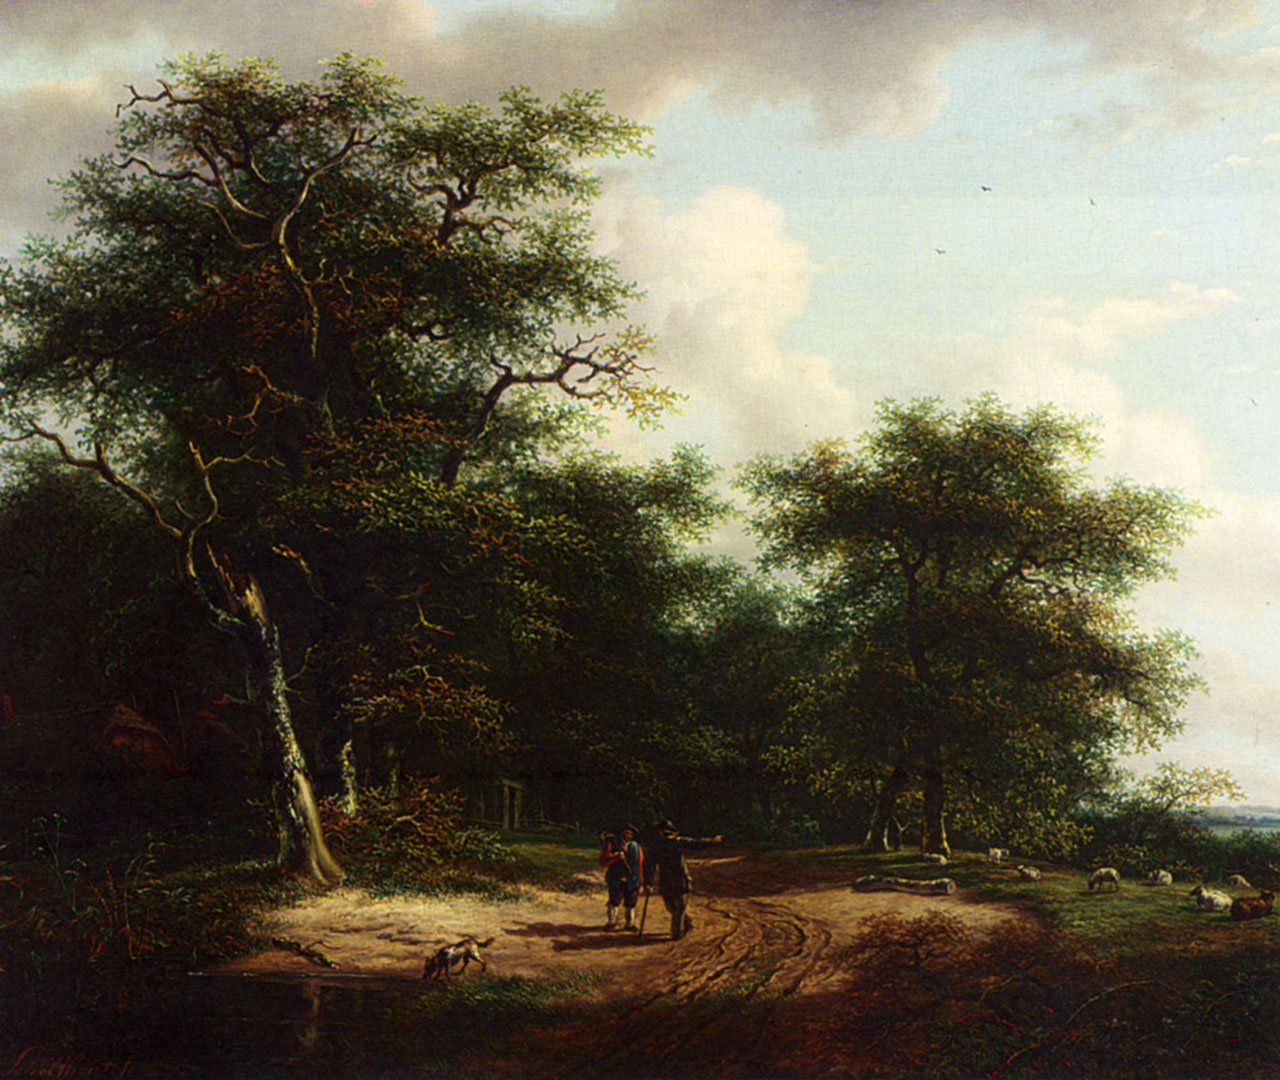 Two Figures In A Summer Landscape